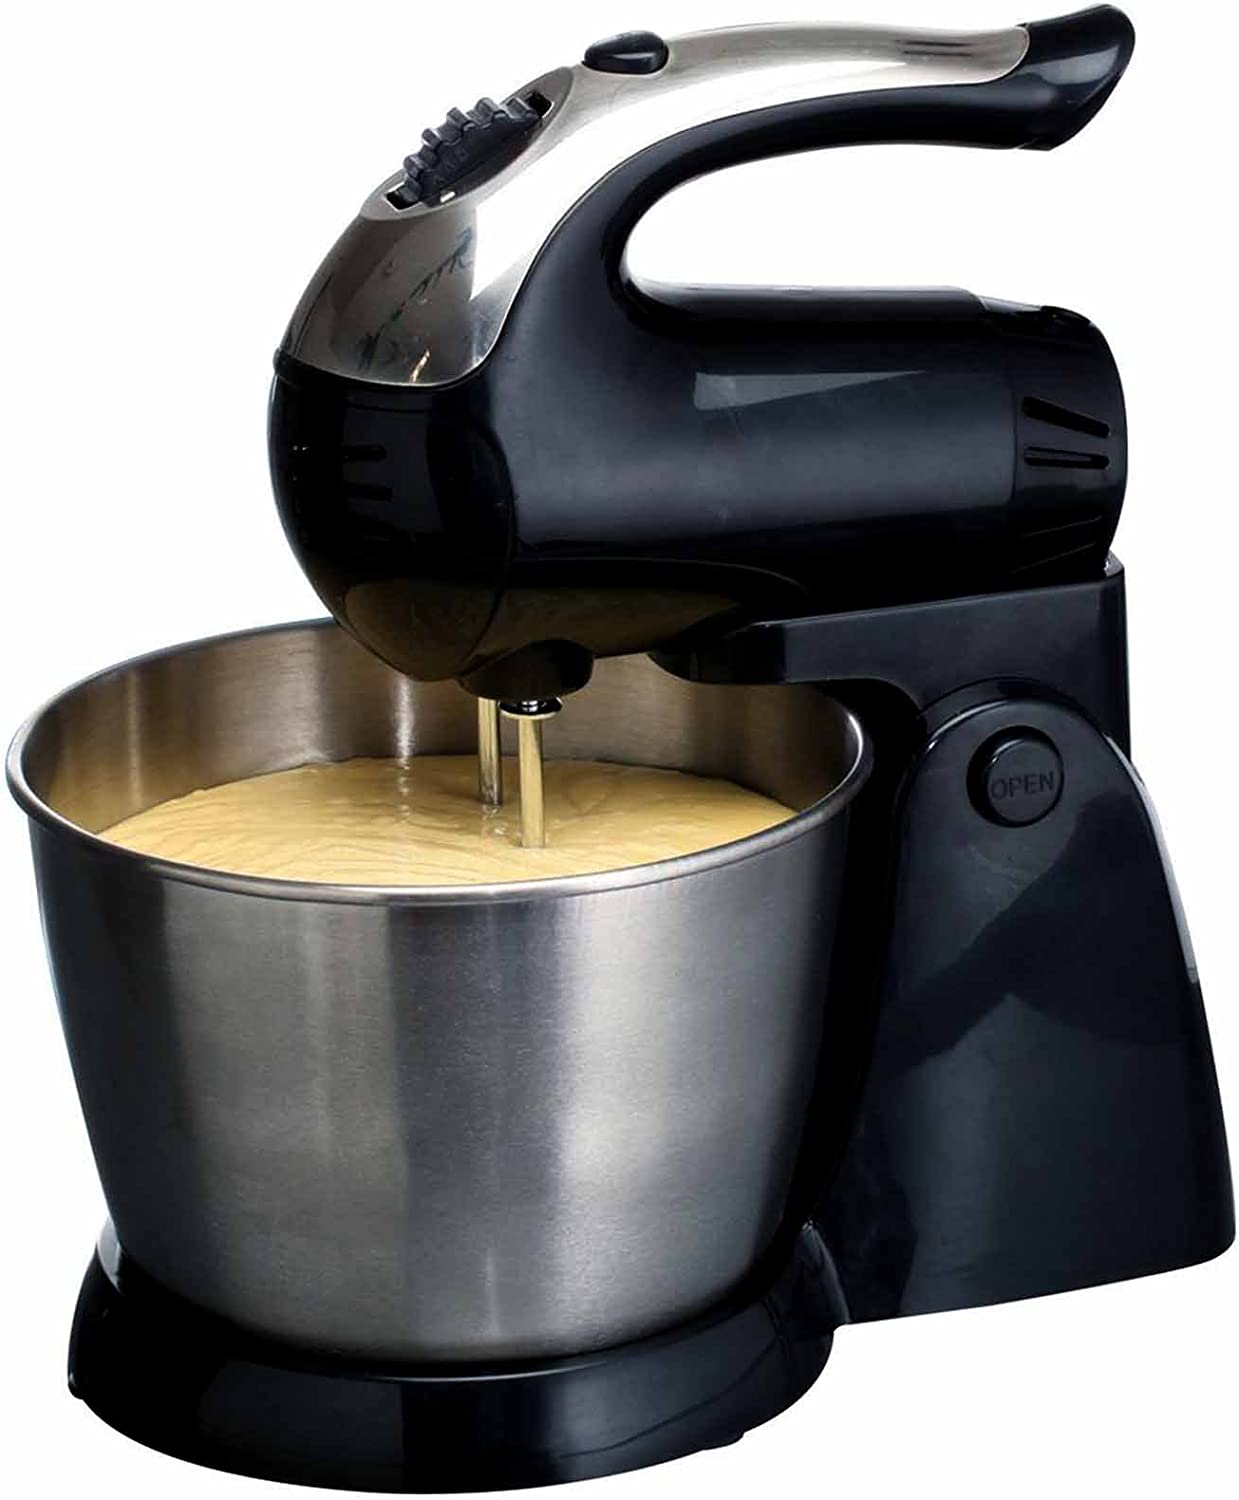 Brentwood SM-1153 200W 5-Speed Stand Mixer - Stainless Steel Bowl - Black Home & Garden by Brentwood